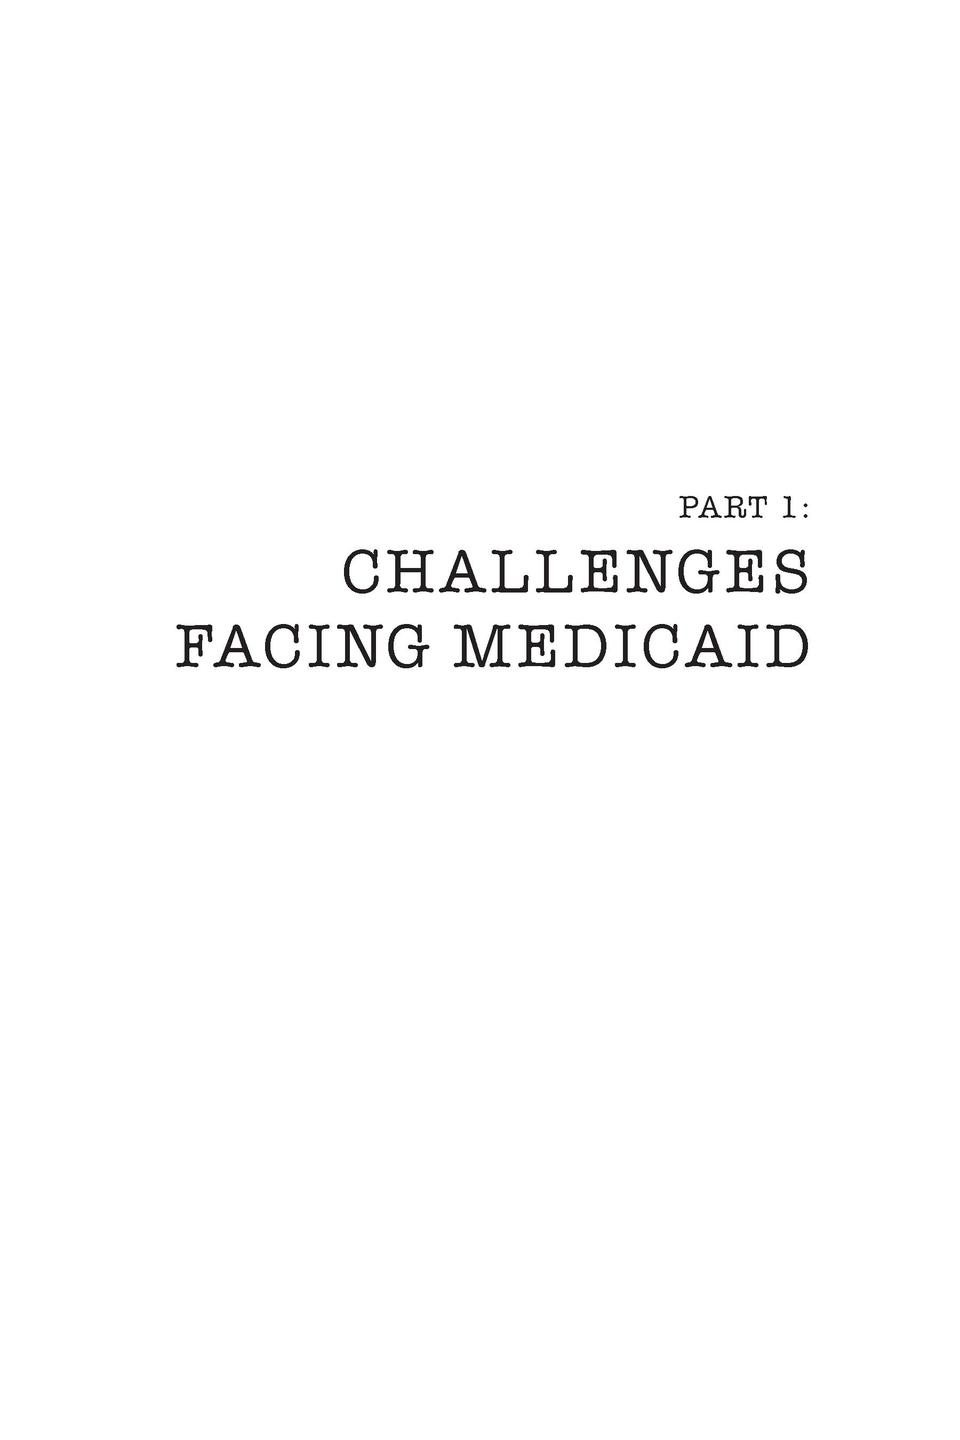 PART 1   CHALLENGES FACING MEDICAID